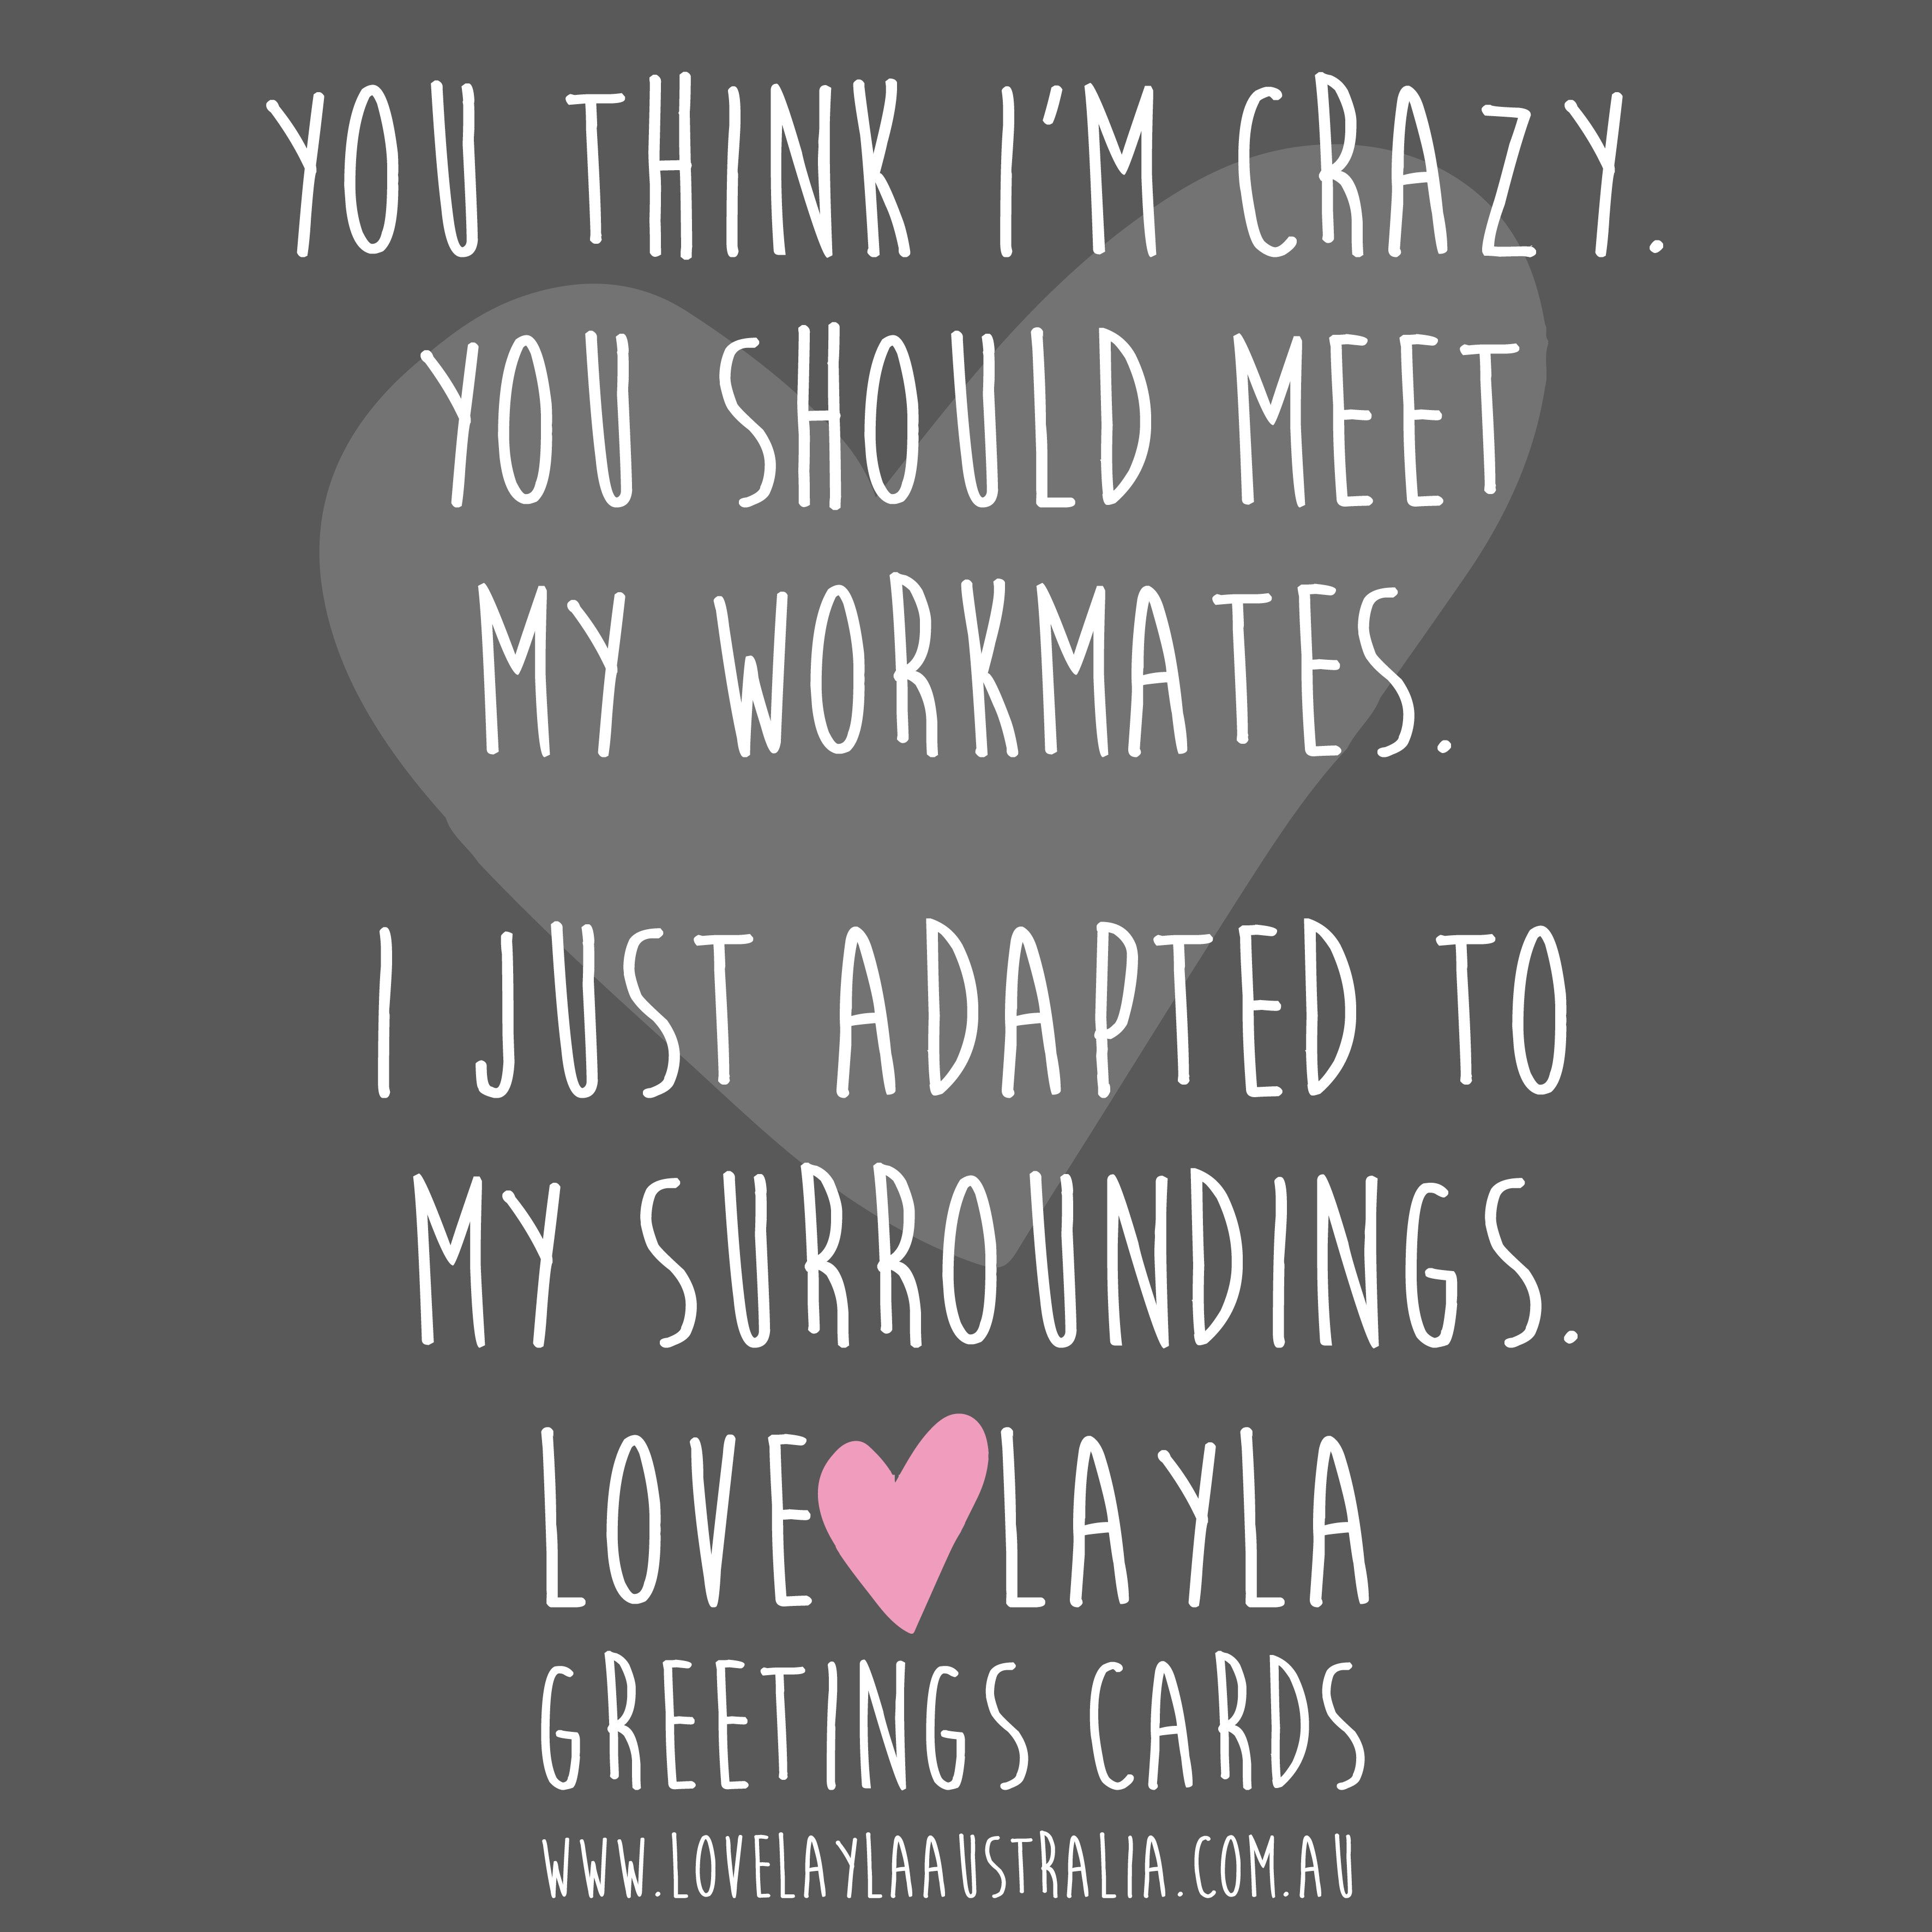 They Re All Nuts Workmates Colleagues Crazy Lovelaylaaustralia Greetingcards Funnycards Funny Mem Funny Greeting Cards Funny Greetings Funny Cards